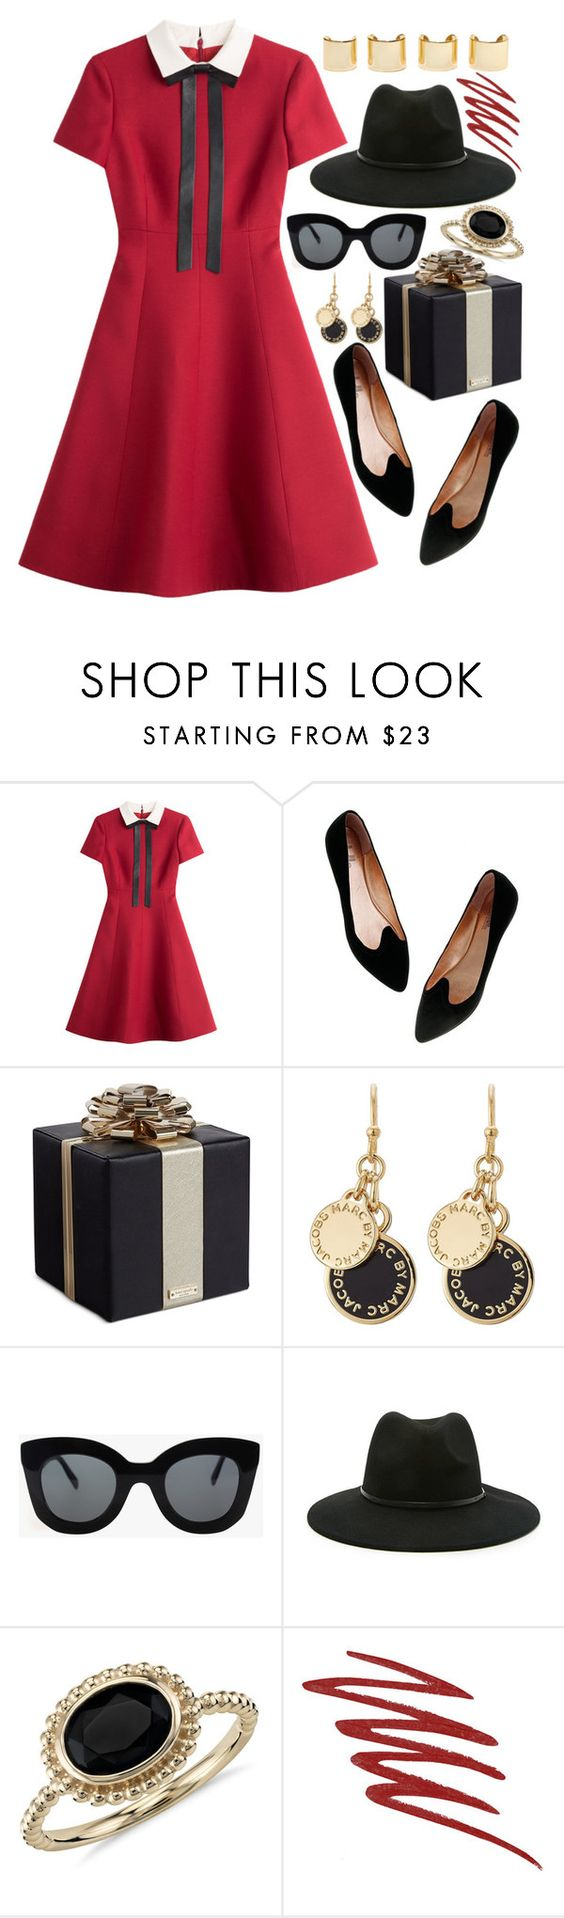 """Untitled #544"" by ssm1562 ❤ liked on Polyvore featuring Valentino, Madewell, Kate Spade, Marc by Marc Jacobs, CÉLINE, Forever 21, Luv Aj, Blue Nile, NARS Cosmetics and women's clothing"